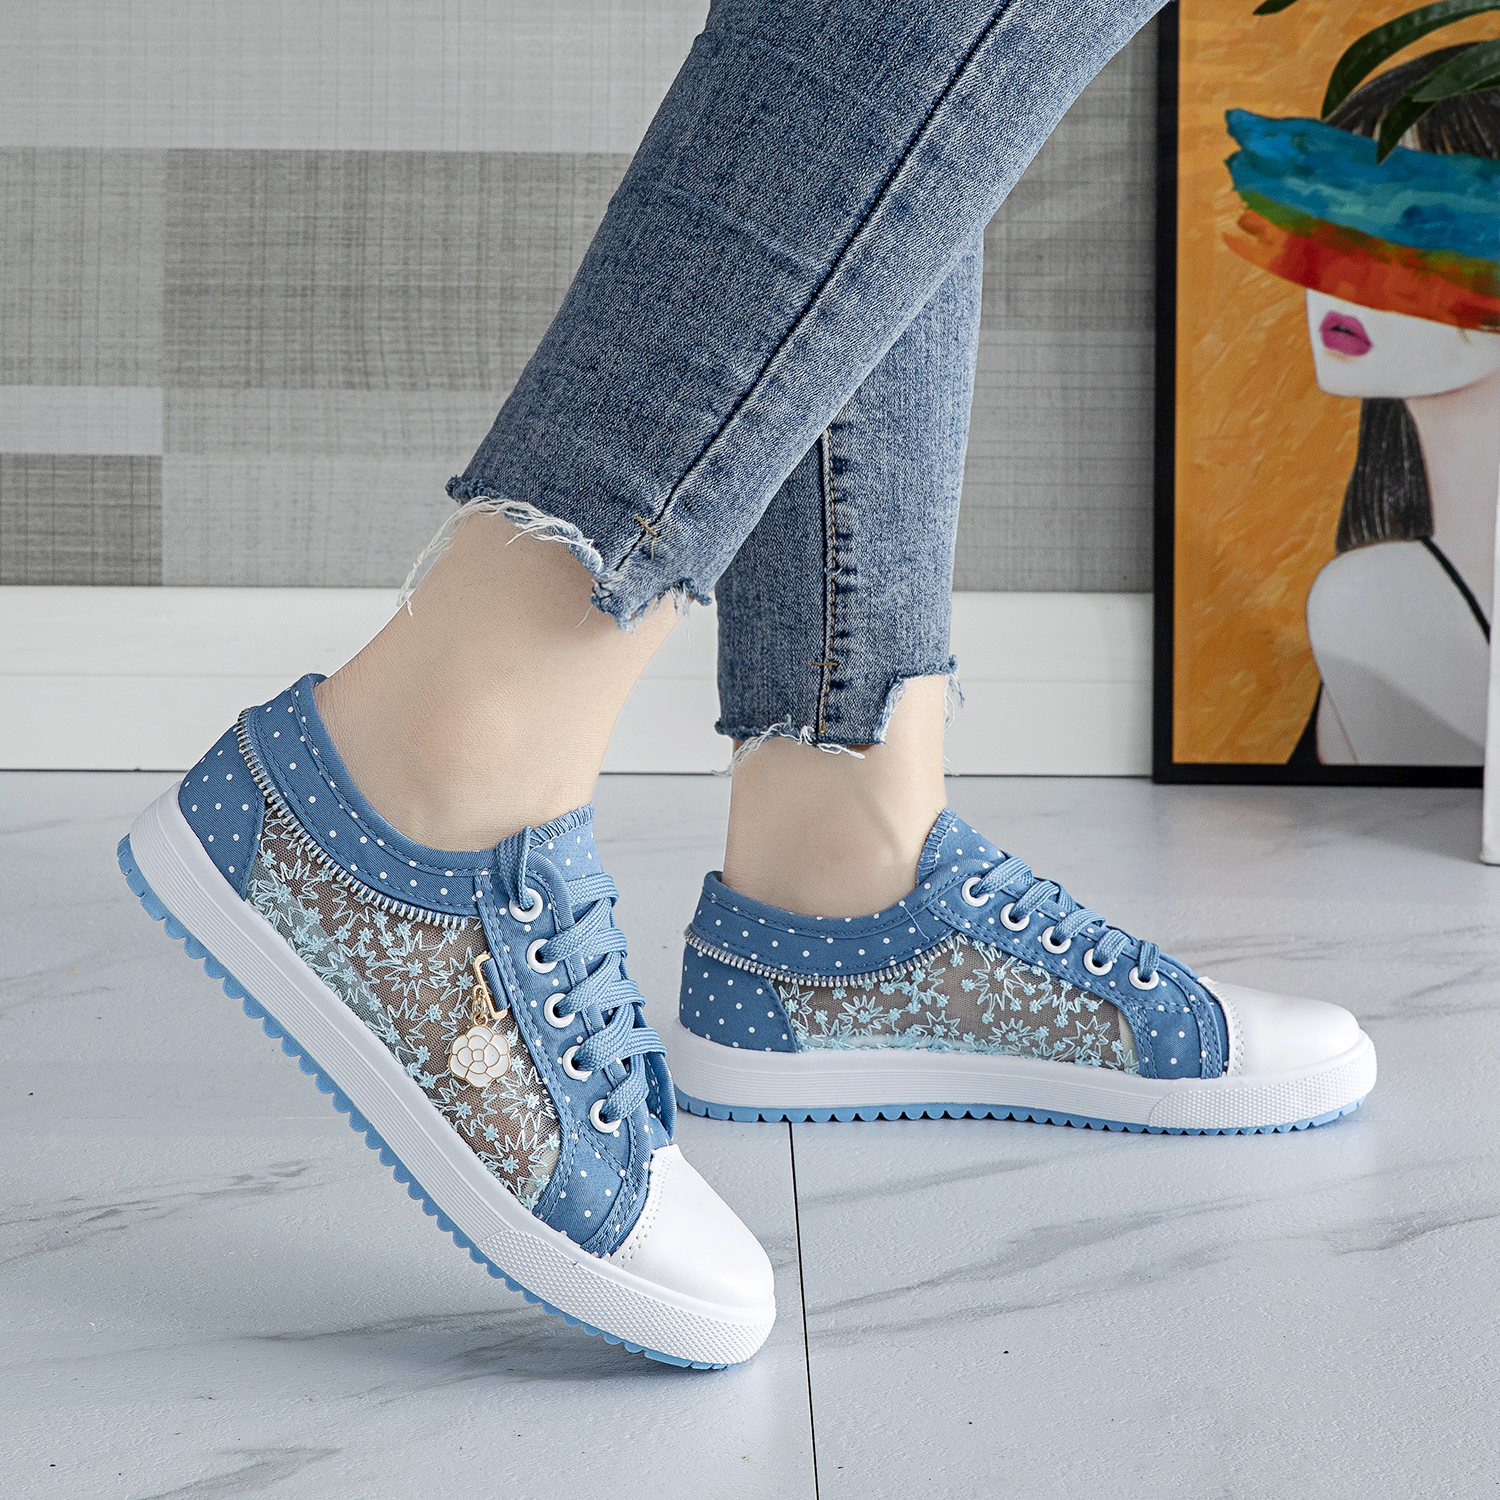 Summer new hollow mesh shoes womens casual shoes high school students board shoes flat bottom low top canvas shoes womens shoes